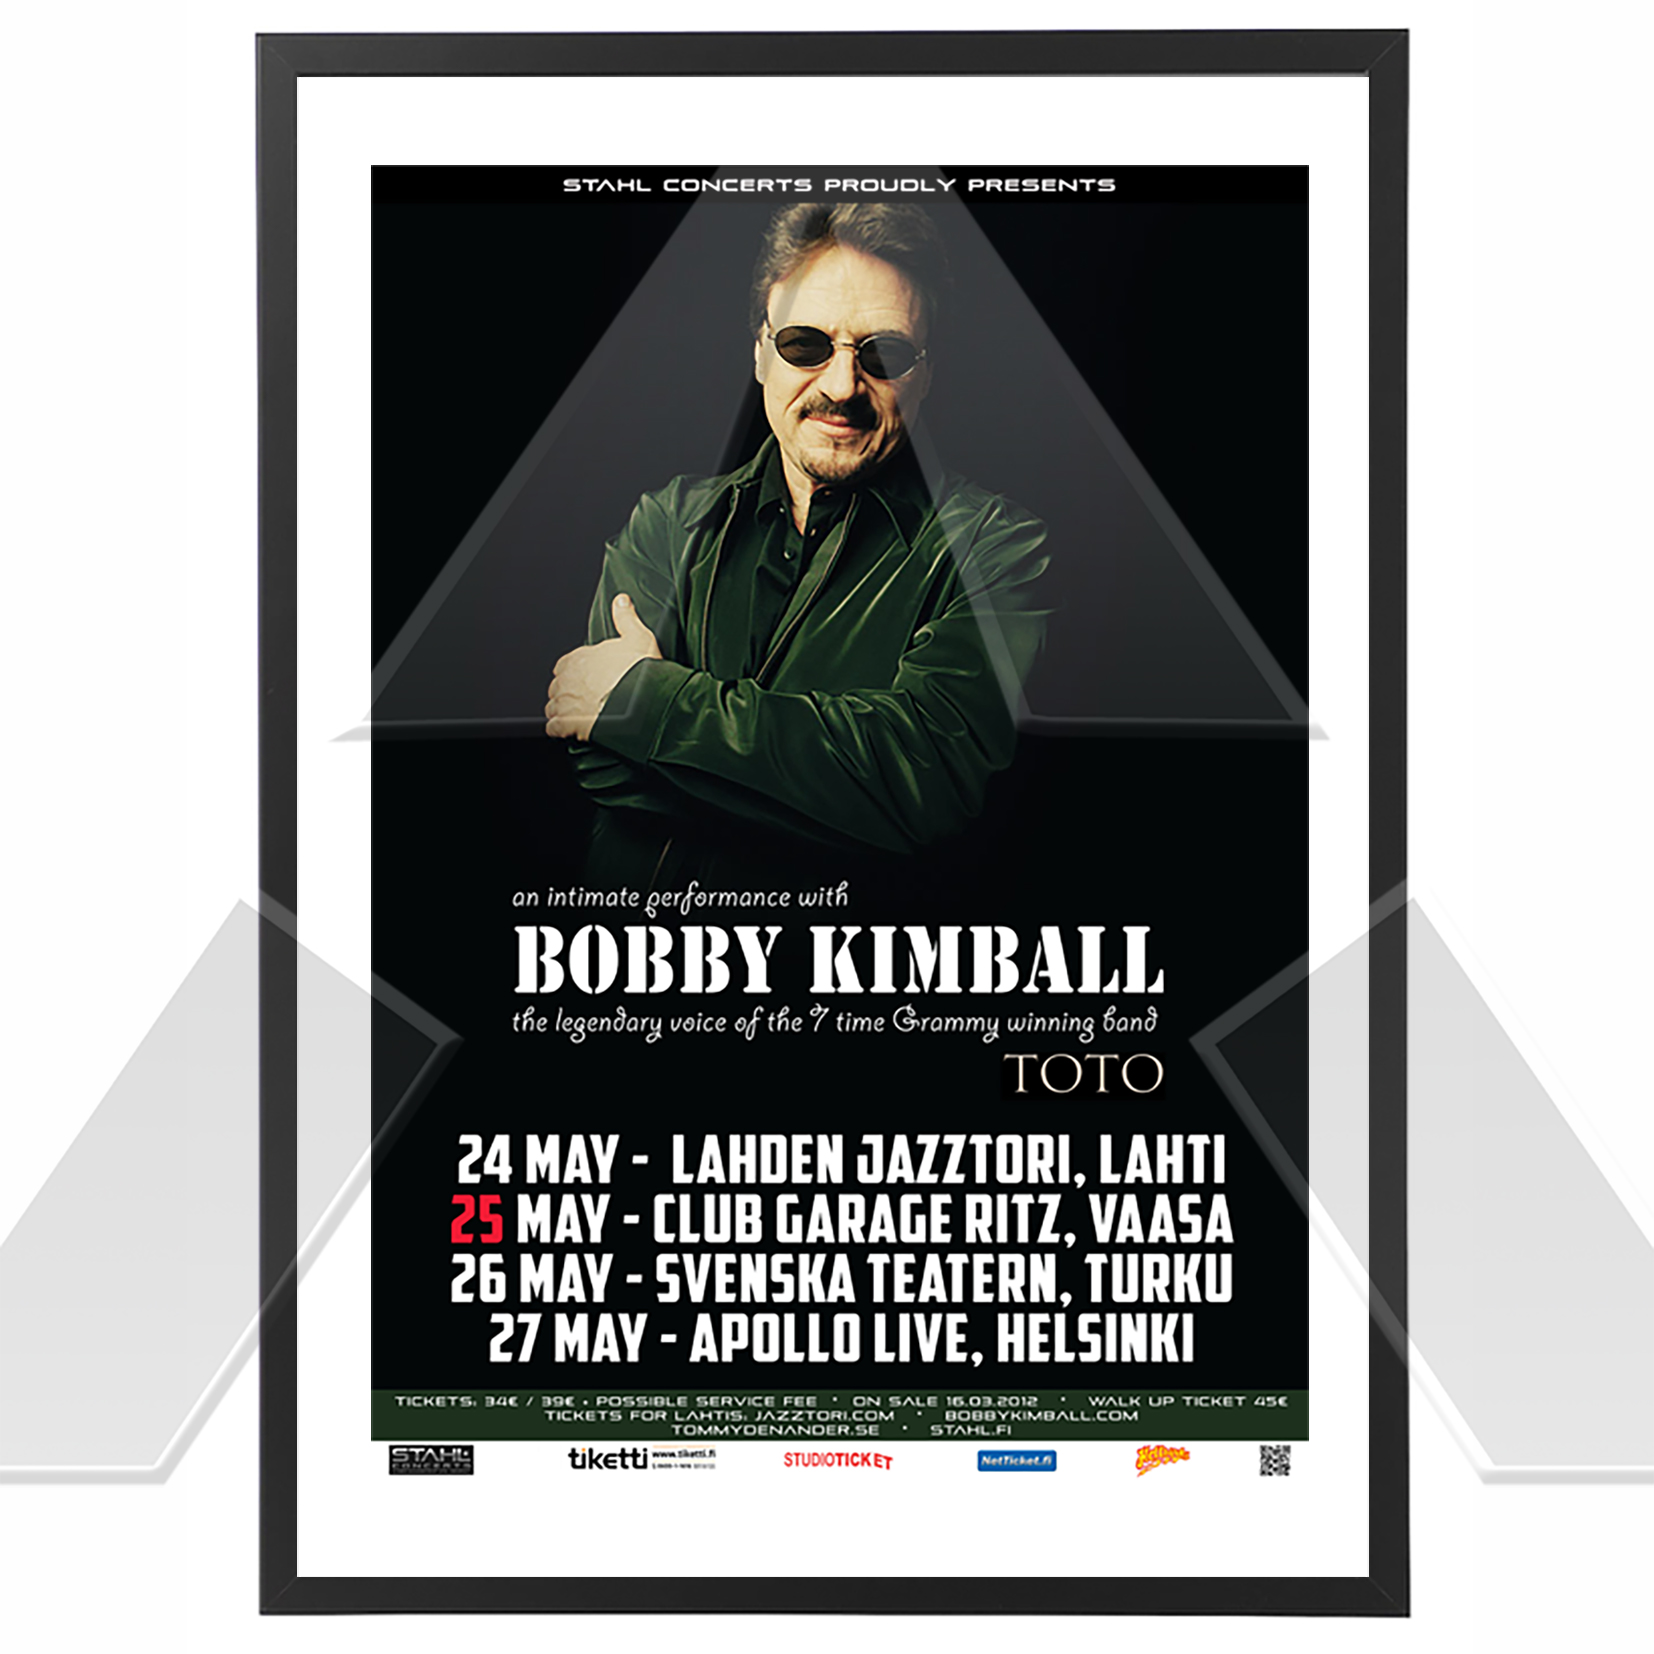 Bobby Kimball ★ An Intimate Performance 2012 (tour poster / signed)